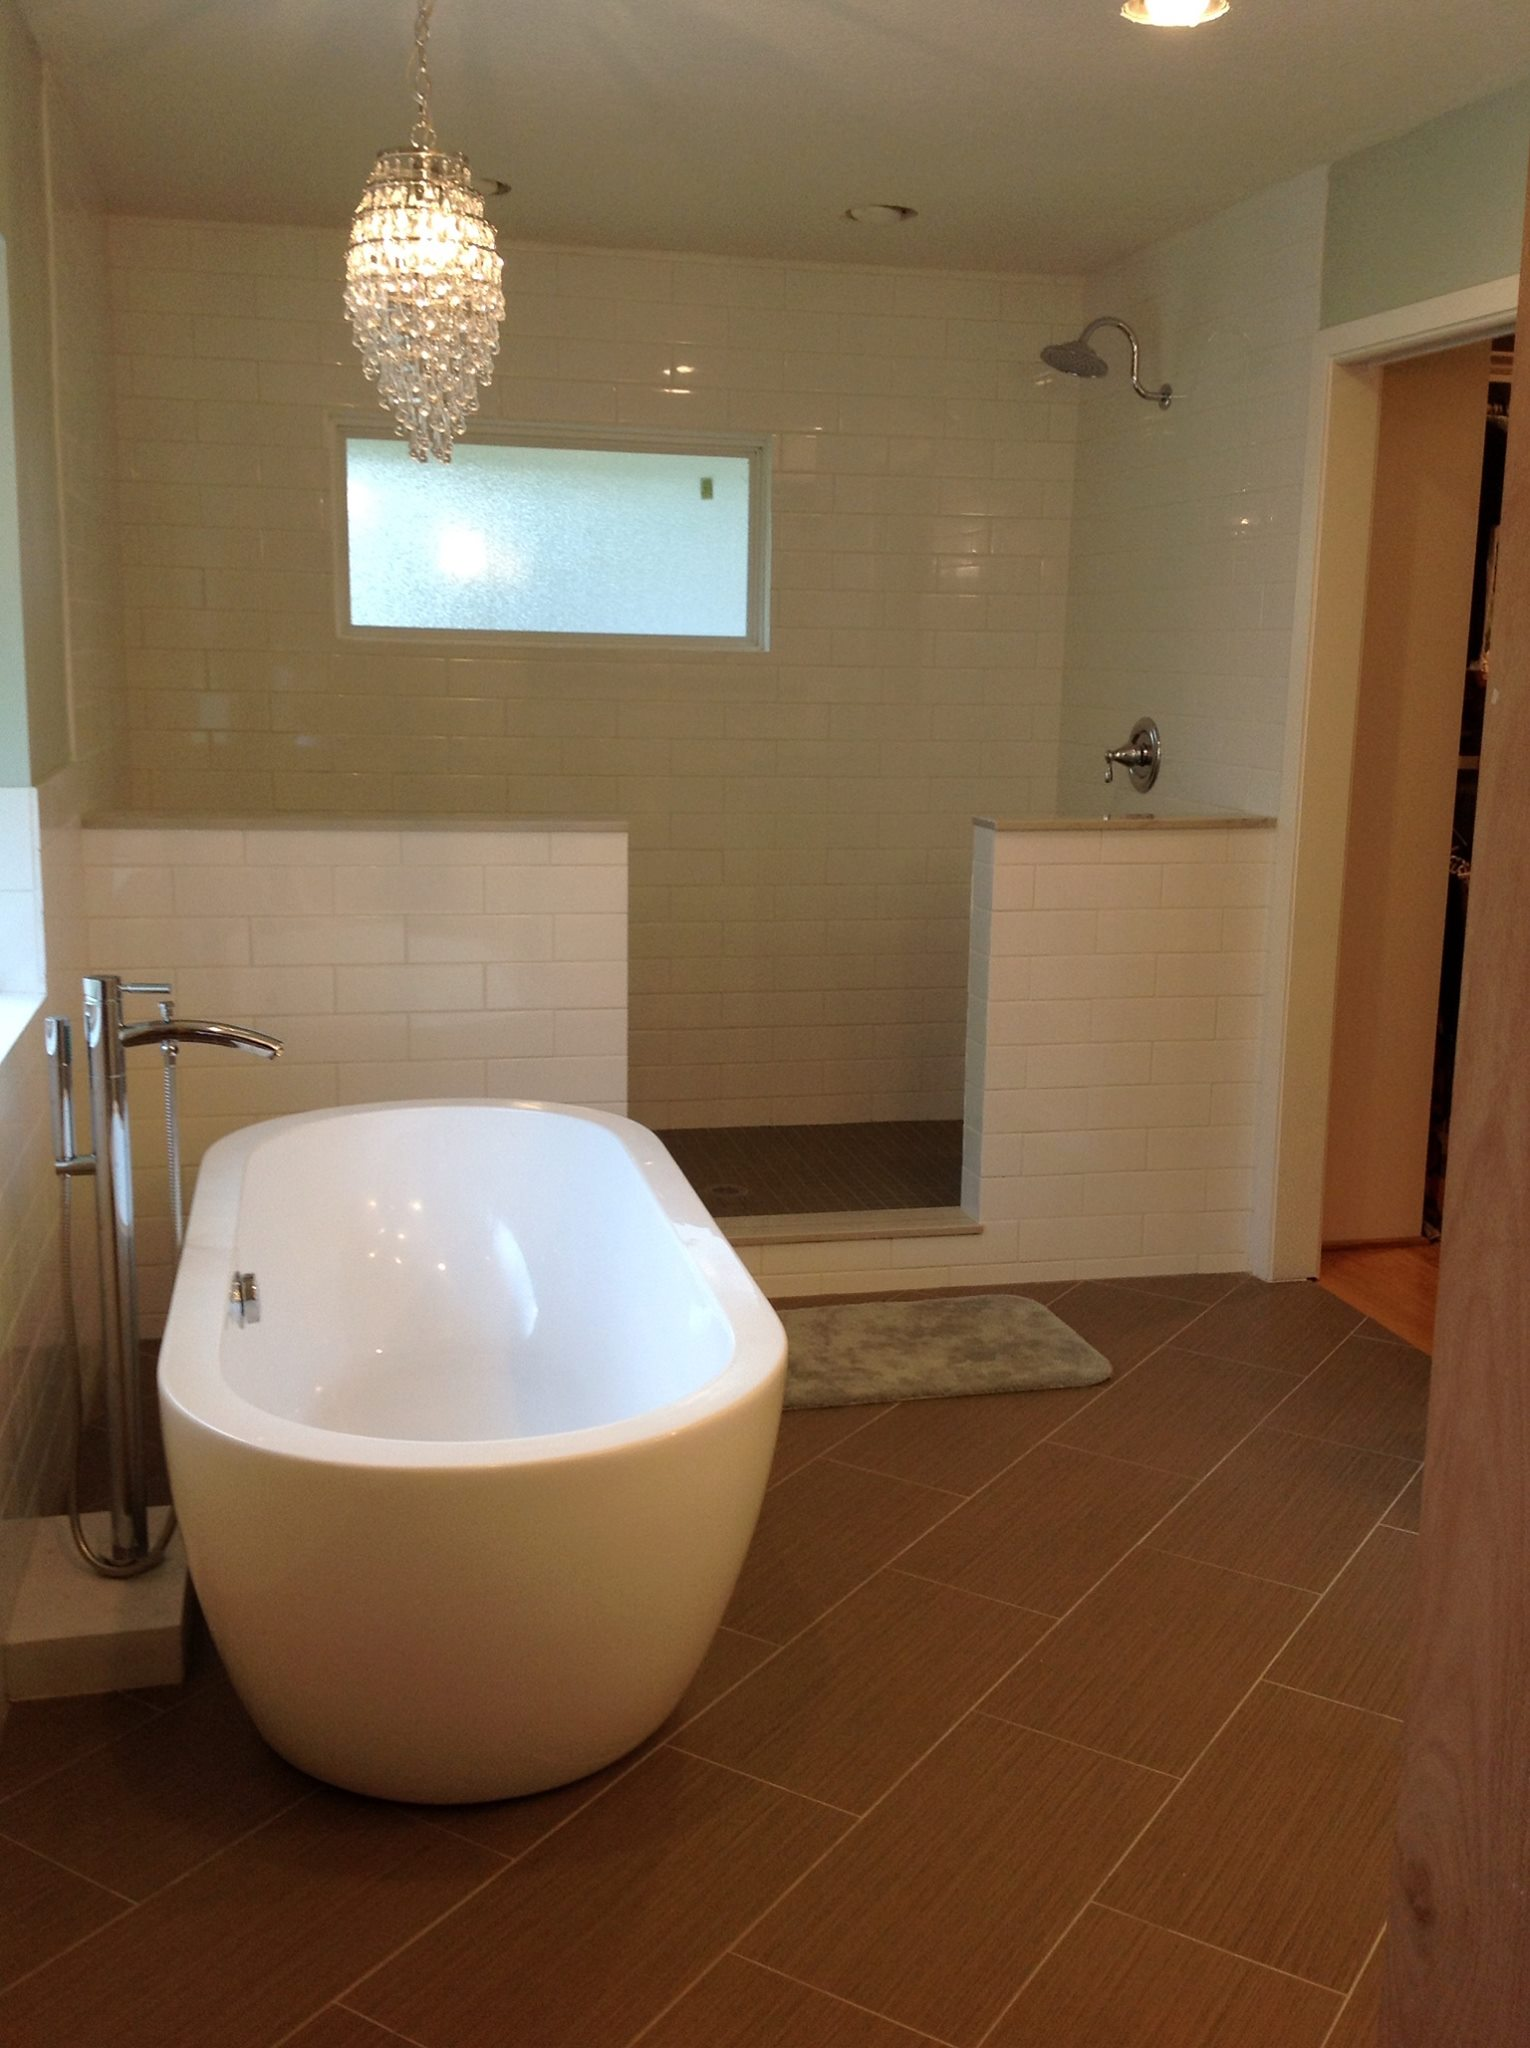 Millbrook Construction - Bathroom remodel - After